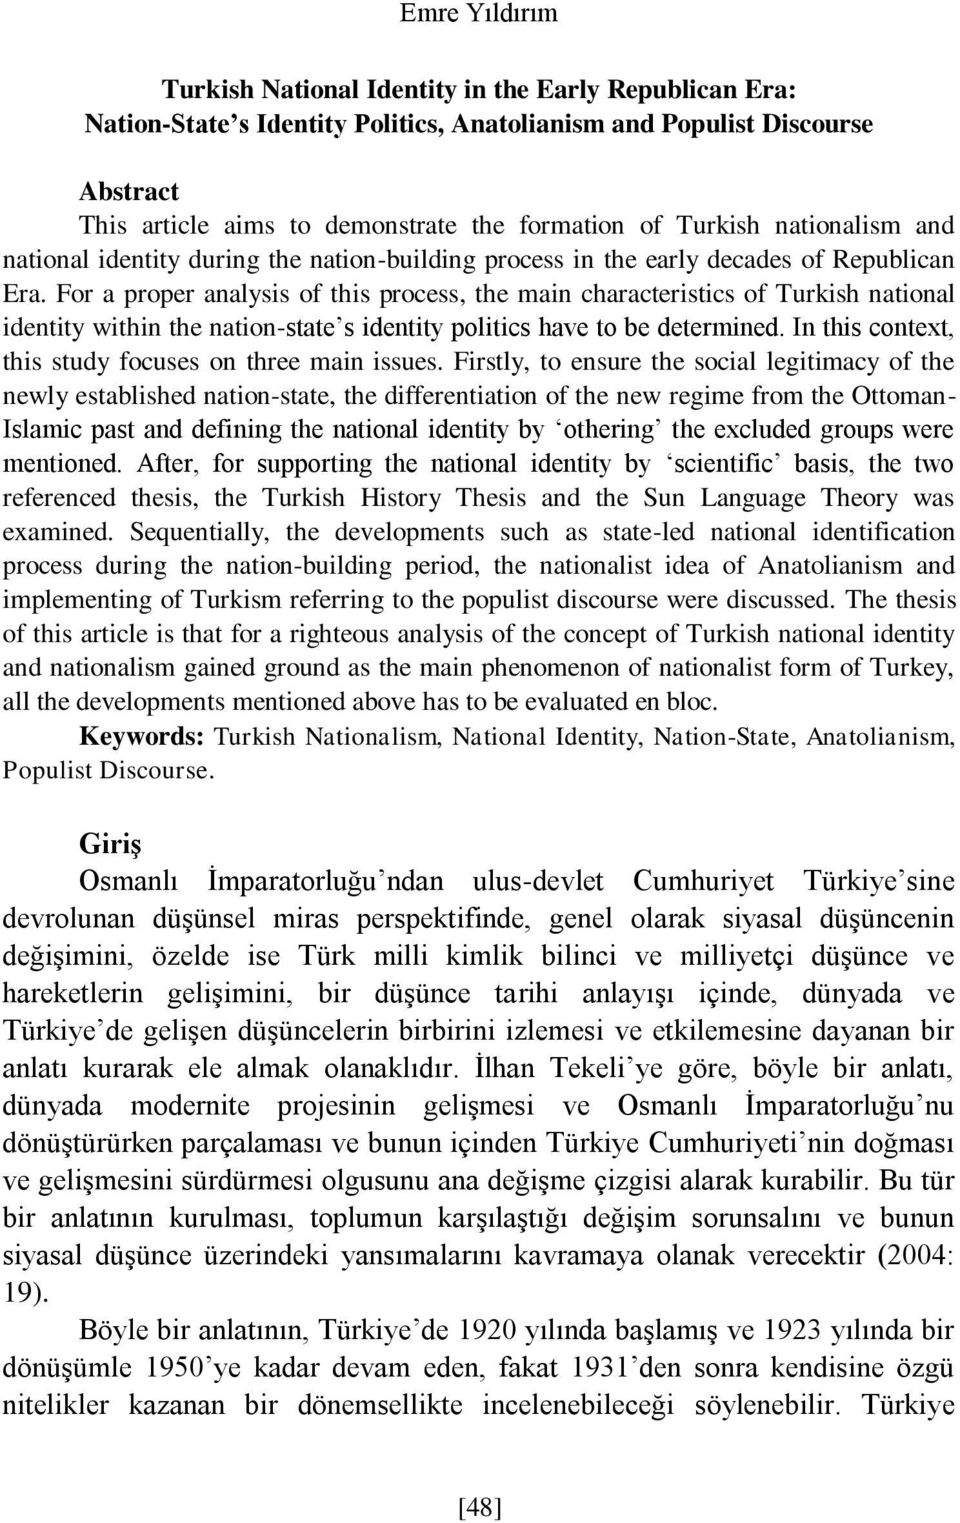 For a proper analysis of this process, the main characteristics of Turkish national identity within the nation-state s identity politics have to be determined.